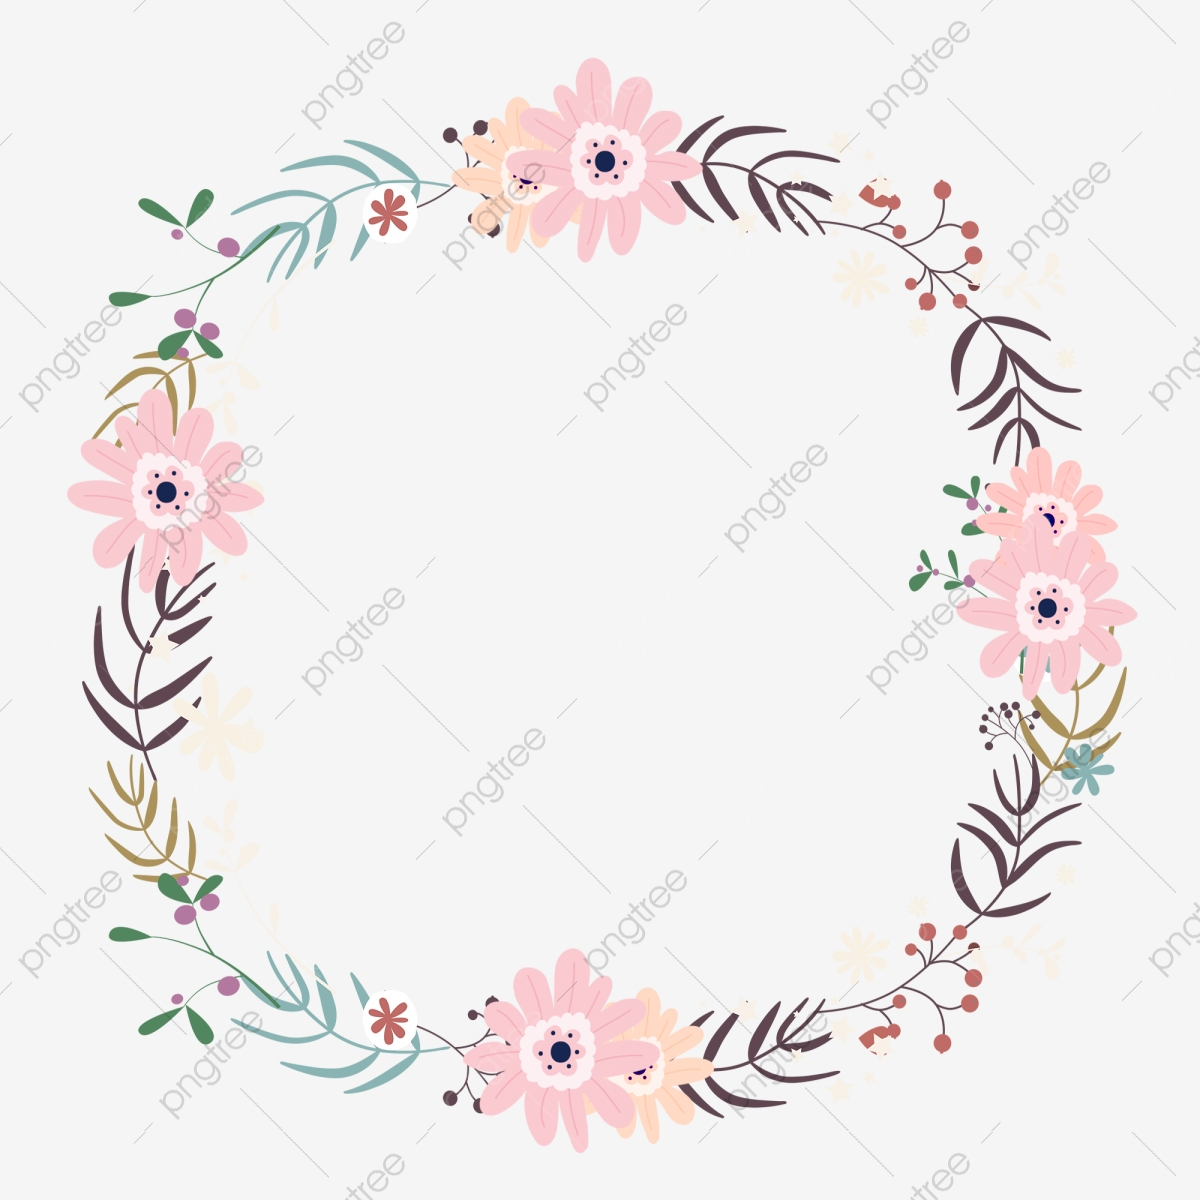 Free Holly Garland Clipart in AI, SVG, EPS or PSD